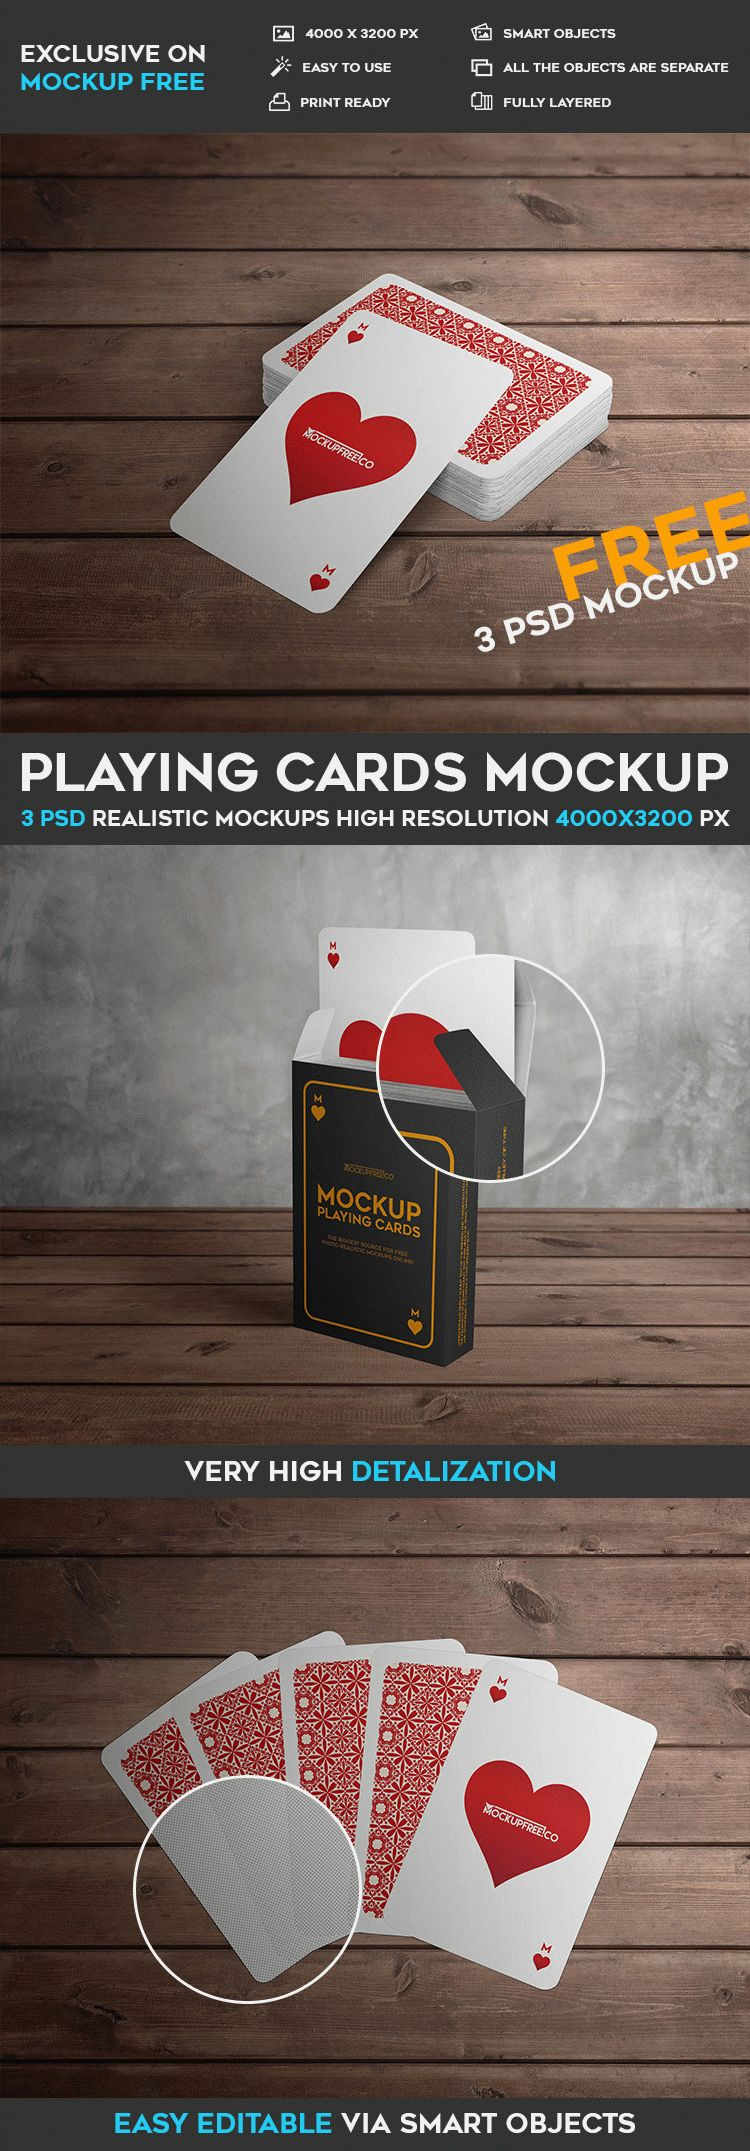 Playing Cards - 3 Free PSD Mockups